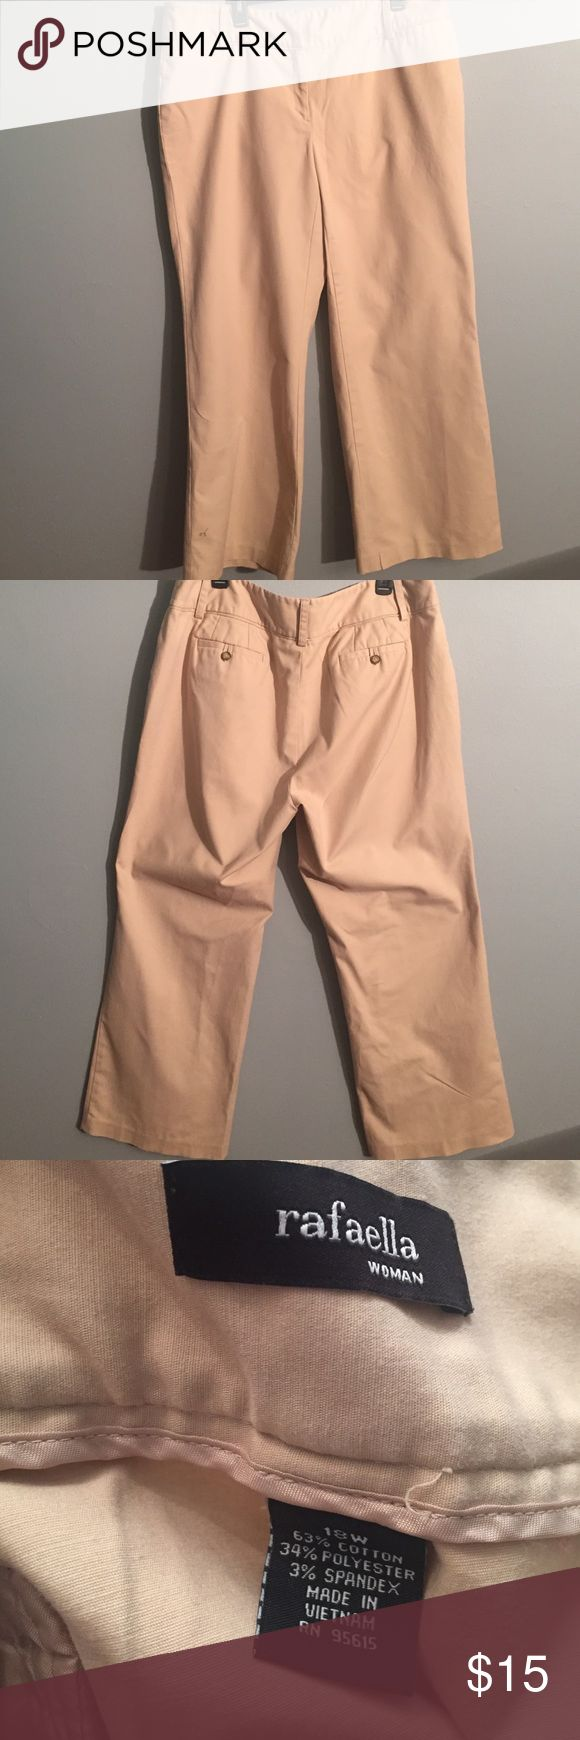 "Rafaella pants Rafaella khaki pants, inseam 30"" Rafaella Pants Boot Cut & Flare"